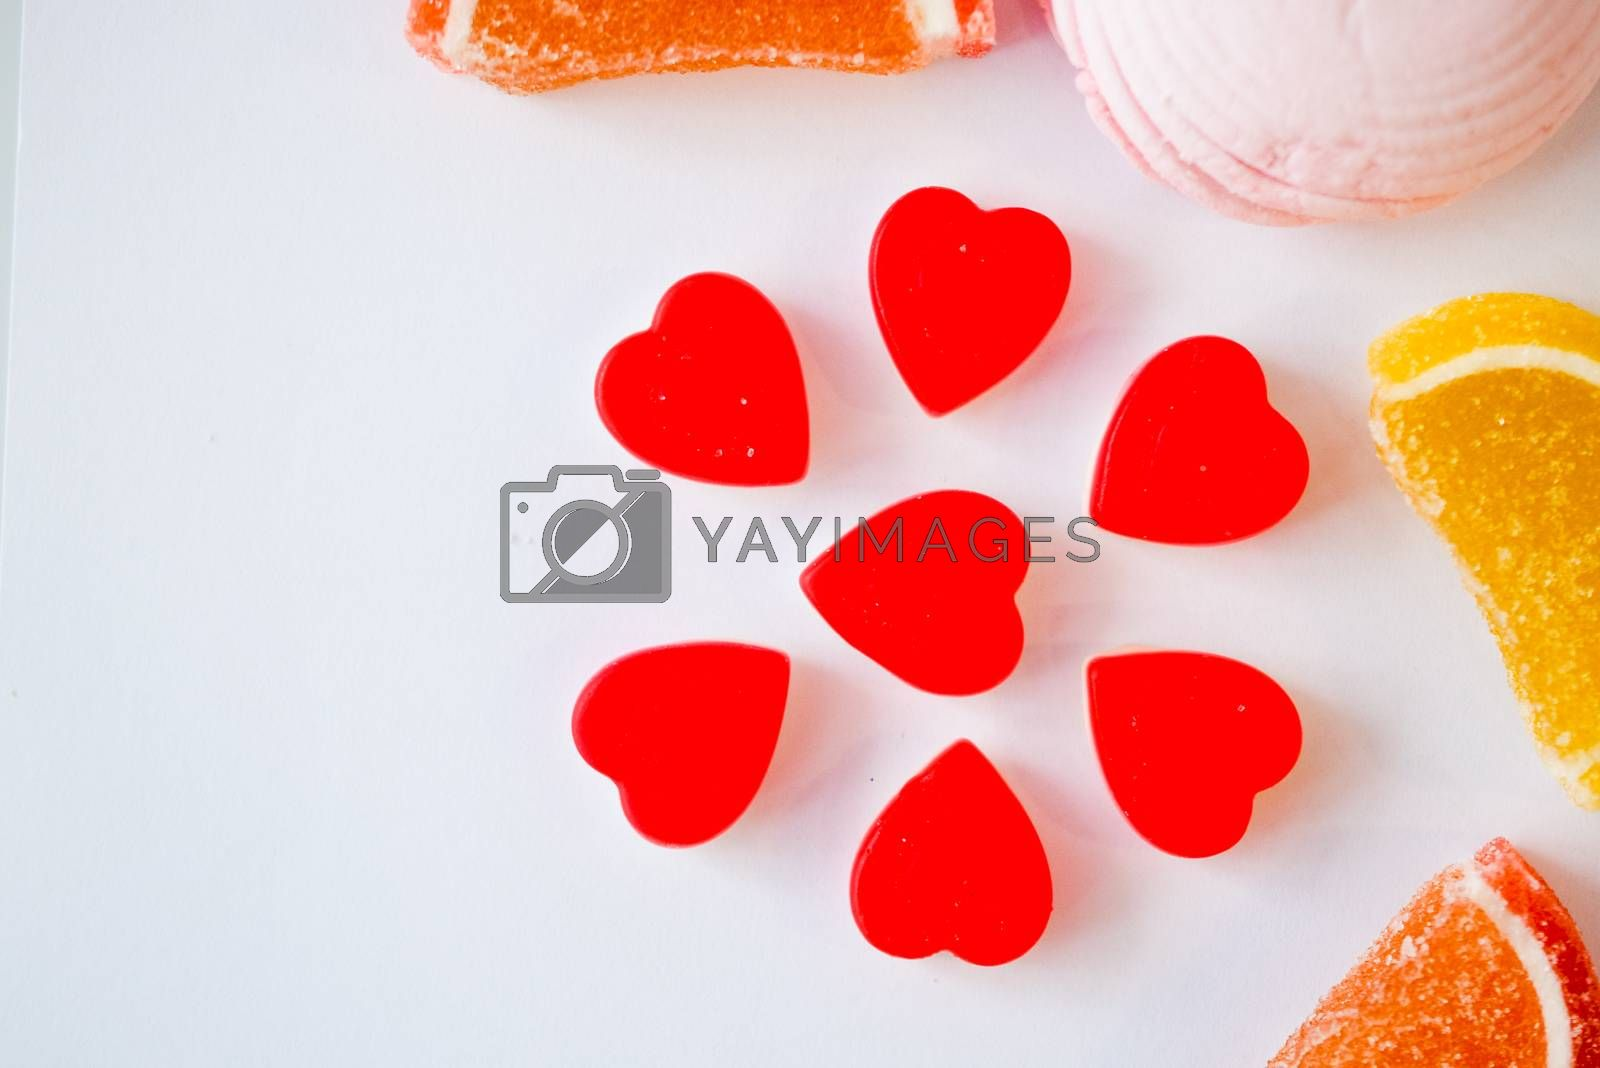 Royalty free image of confectionery - marmalade in the form of a heart and cookies in the form of a flower by alexandr_sorokin